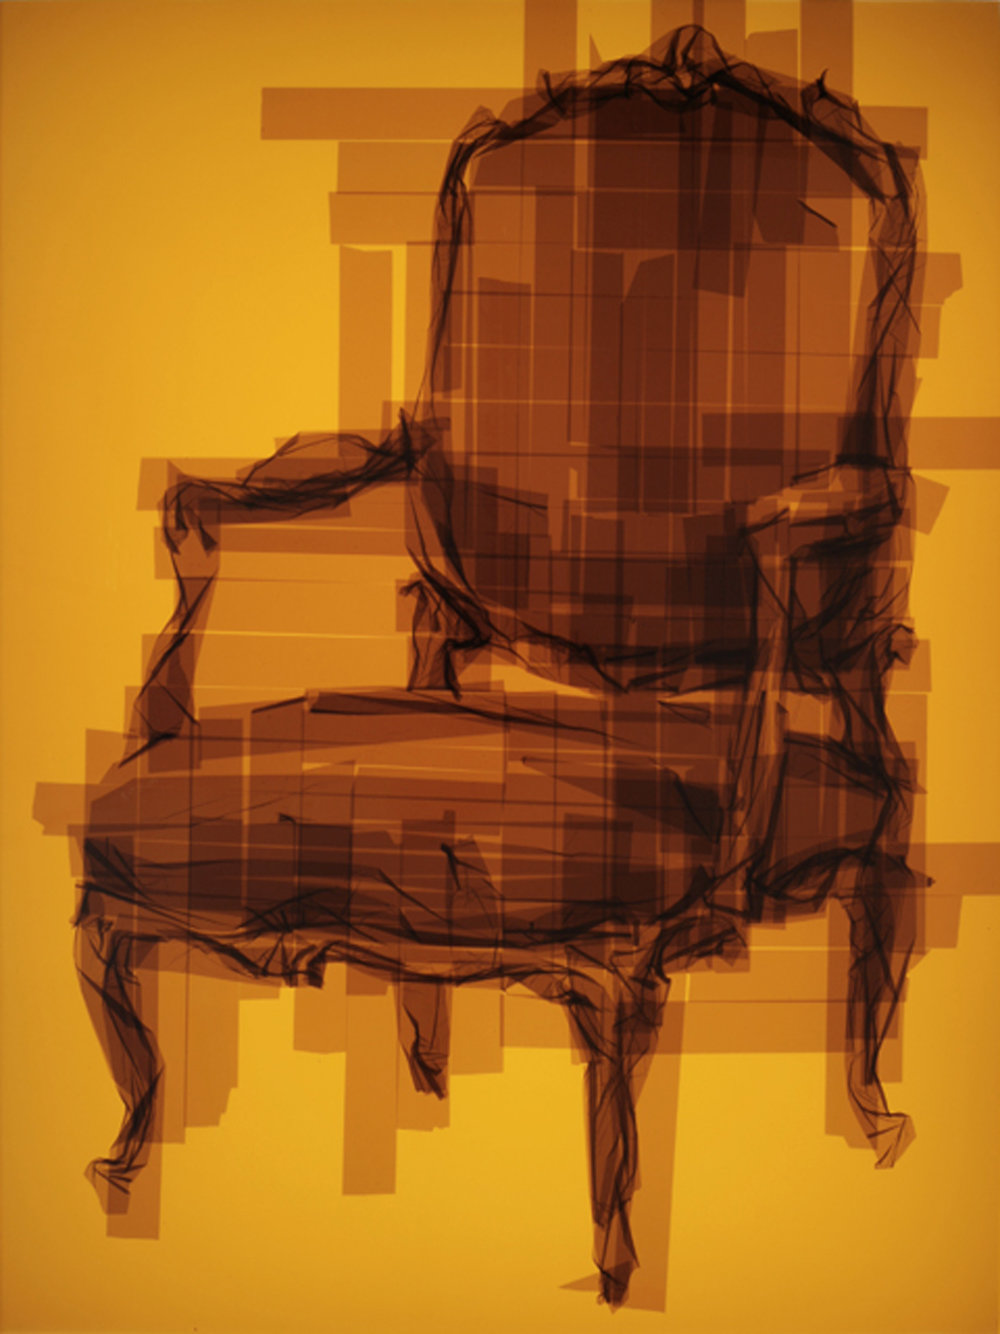 Chair 17, 49 x 37 x 4.5 inches / 124.5 x 94 x 11.5 cm, packaging tape on acrylic panels with LED light box, 2015